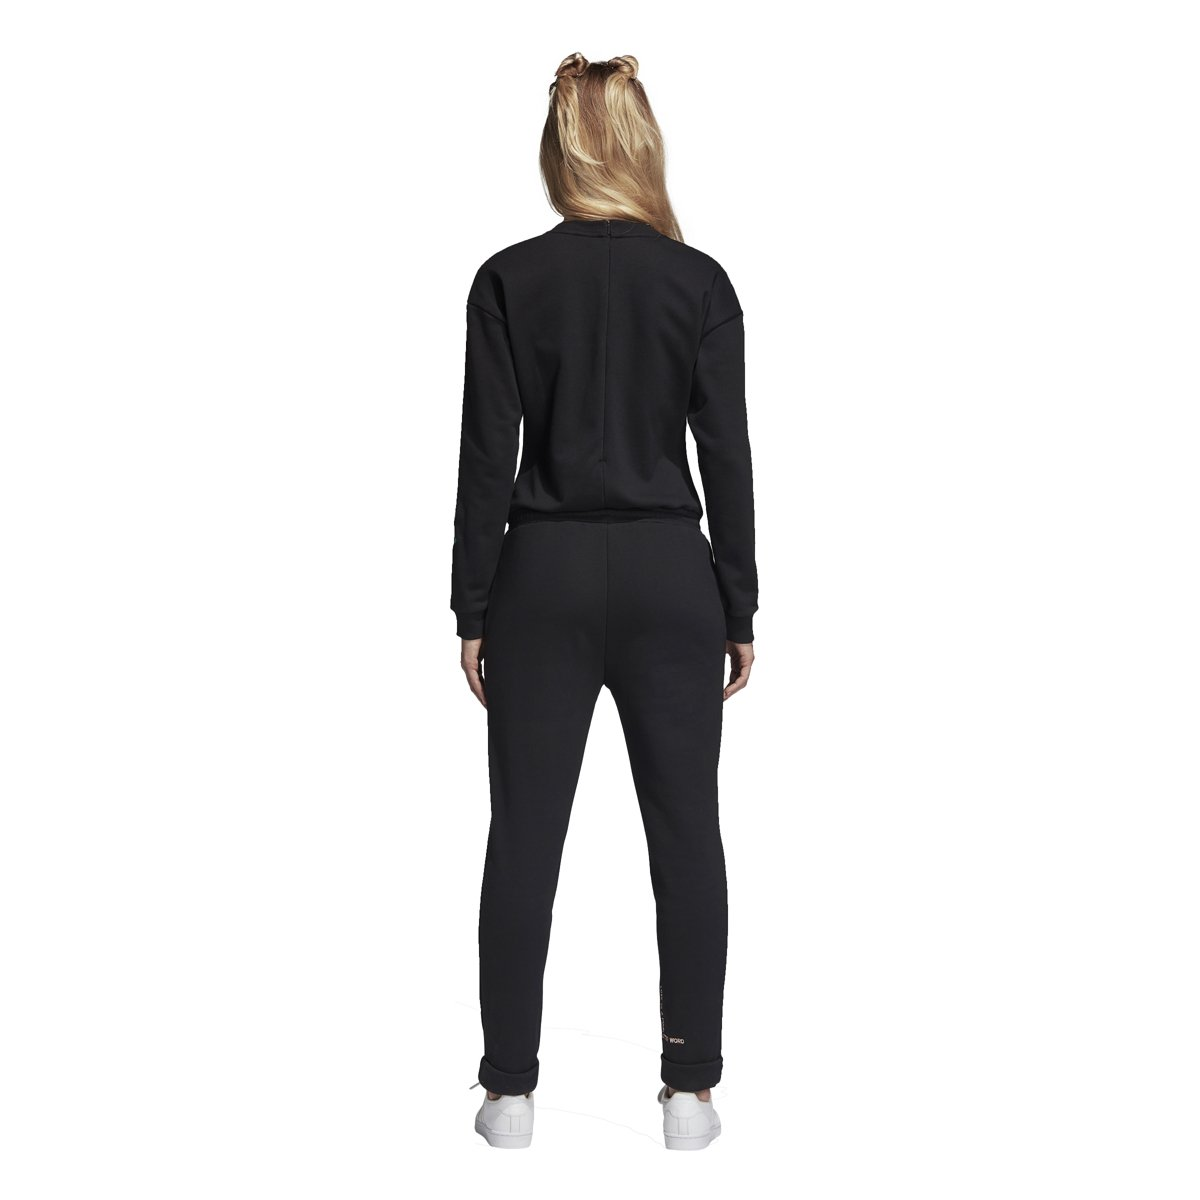 74ffd3c882 Adidas Jumpsuit Womens Amazon | Saddha